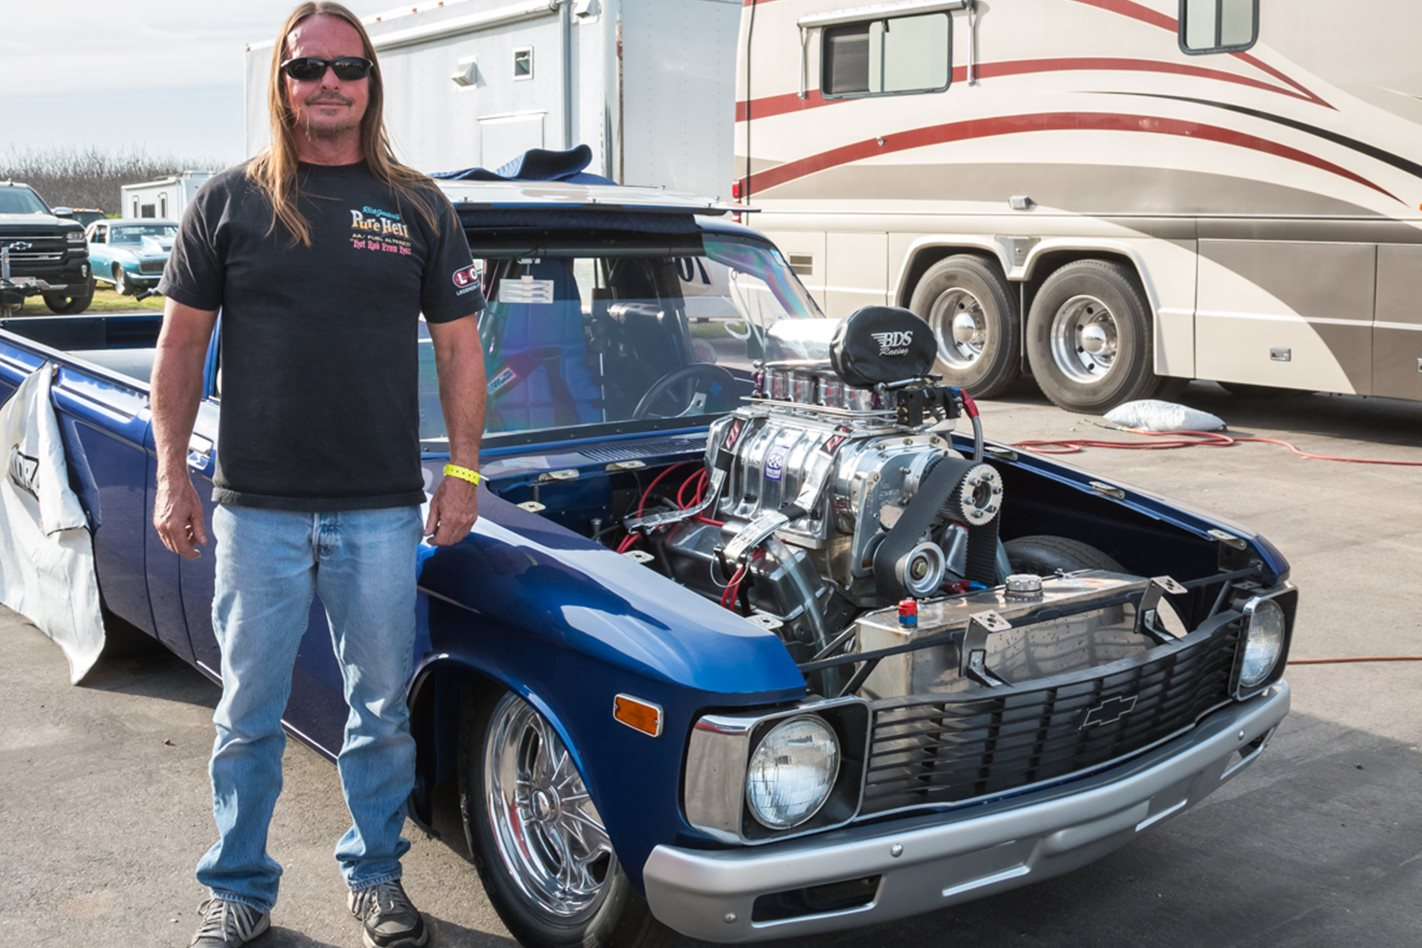 Scott Bisel and his 1972 Chevy Luv